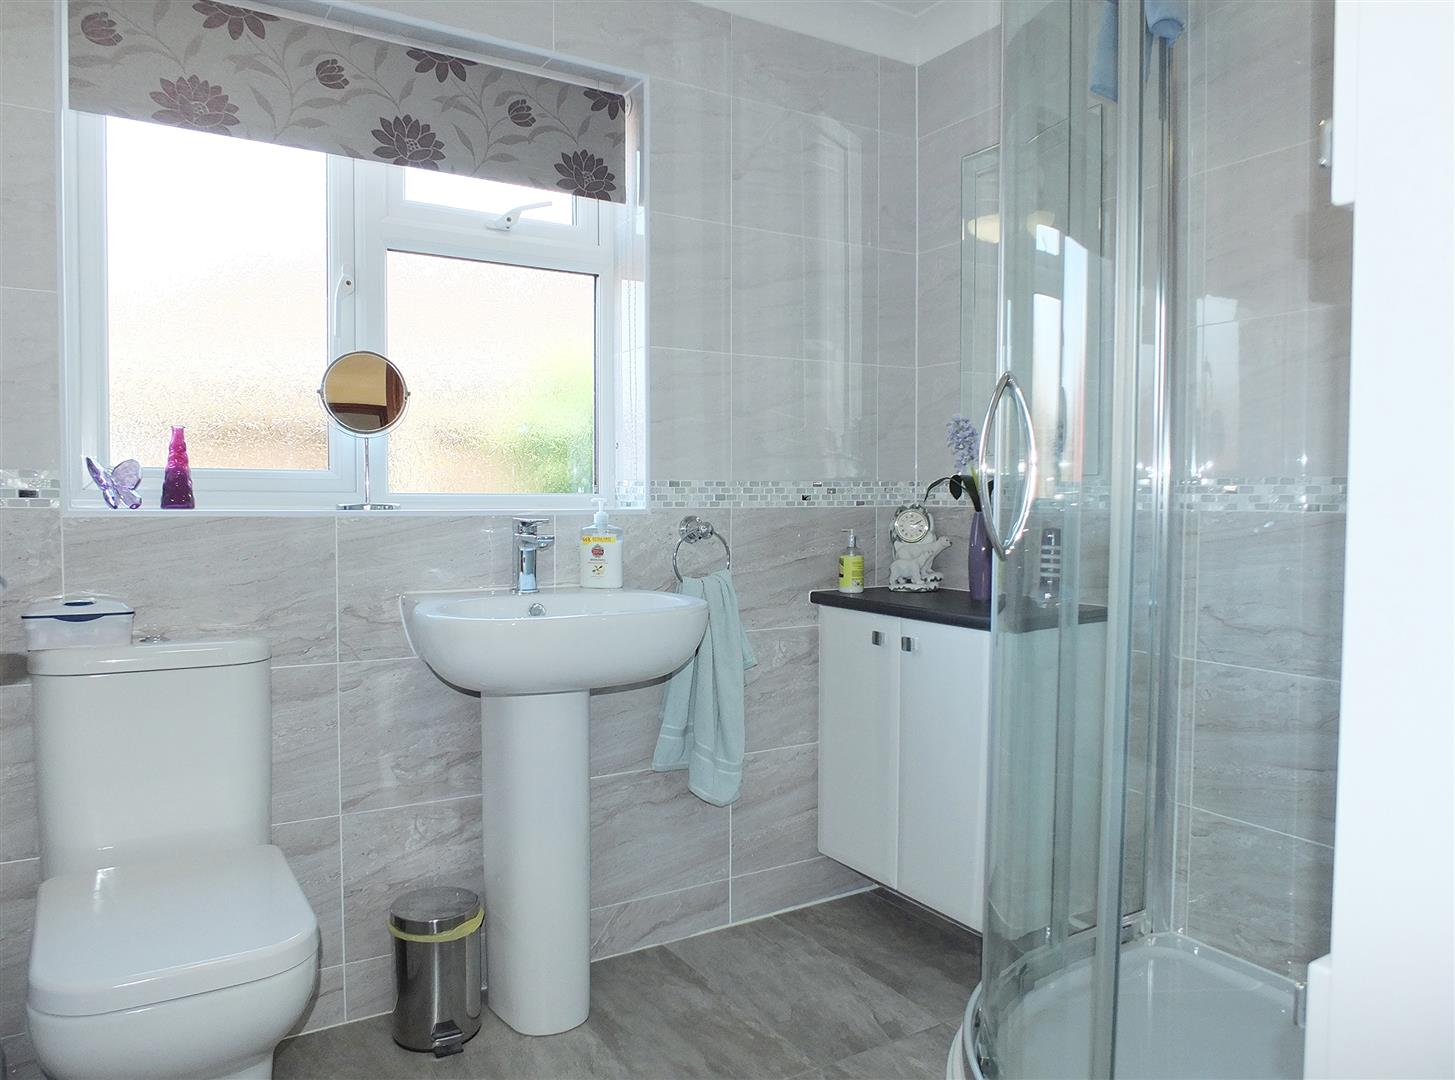 3 bed detached bungalow for sale in Long Sutton Spalding, PE12 9FT 12